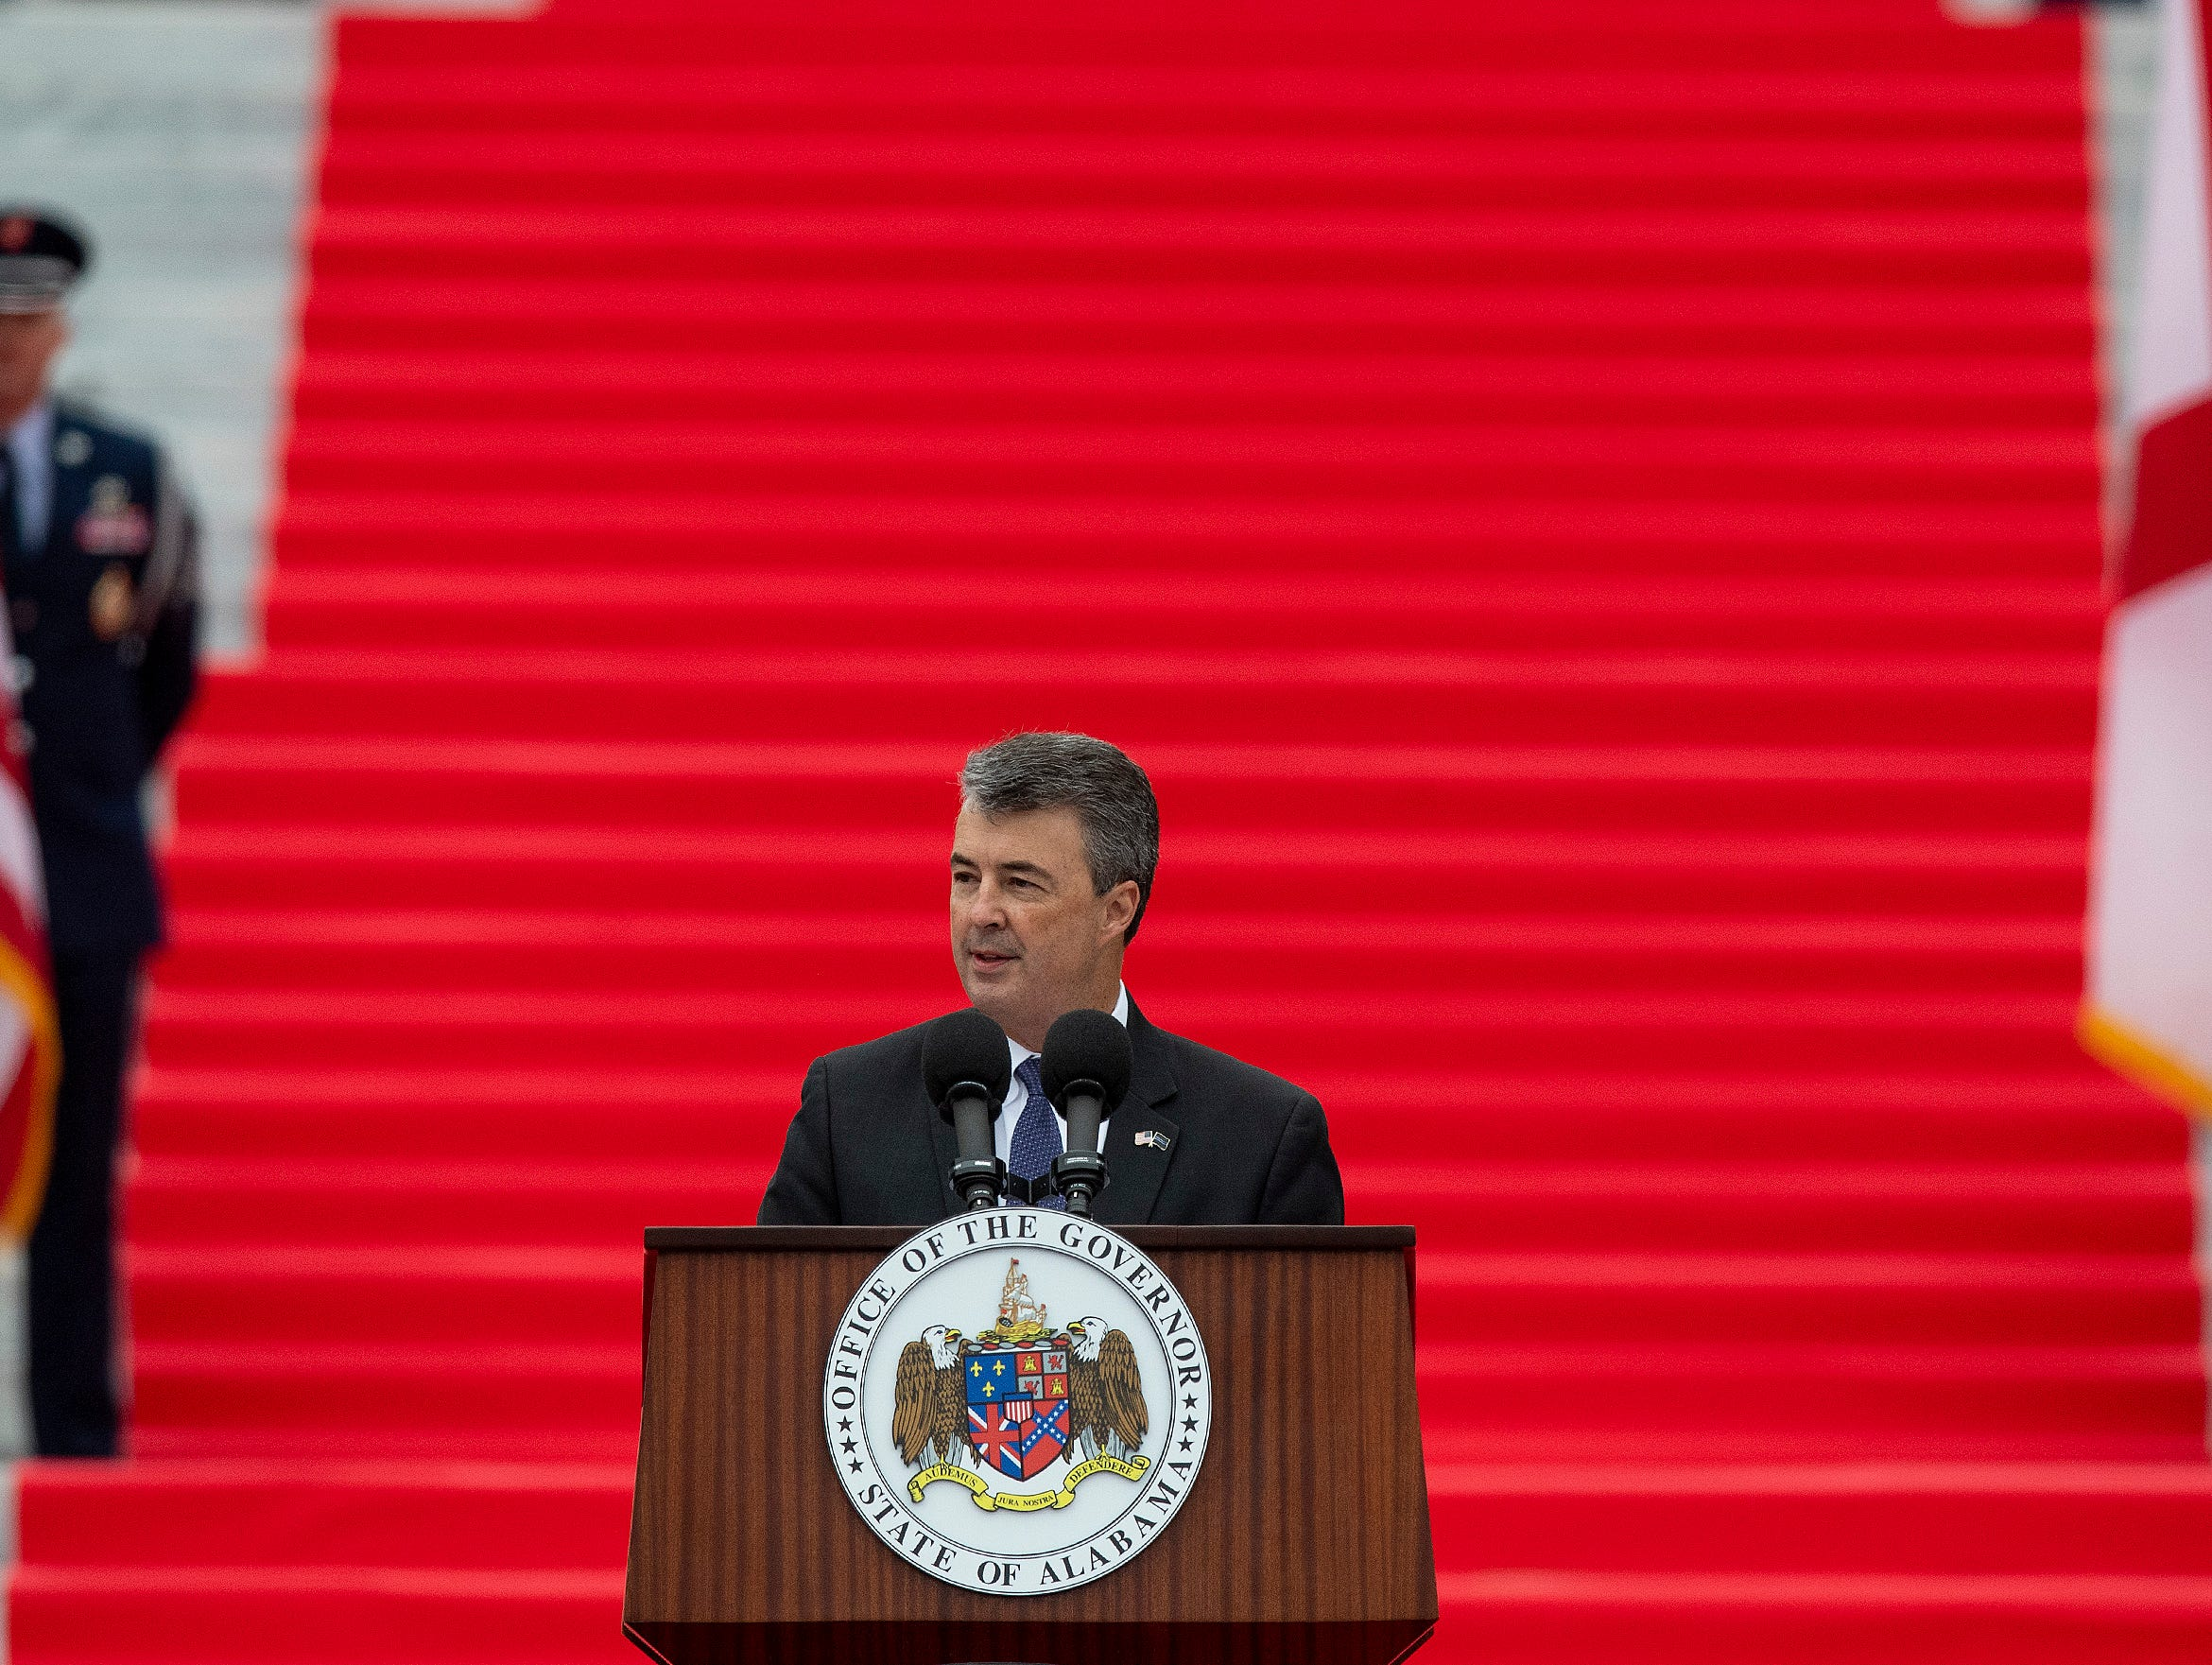 State Attorney General Steve Marshall speaks after being sworn in during the Inauguration of Governor Kay Ivey on the state capitol steps in Montgomery, Ala., on Monday January 14, 2019.